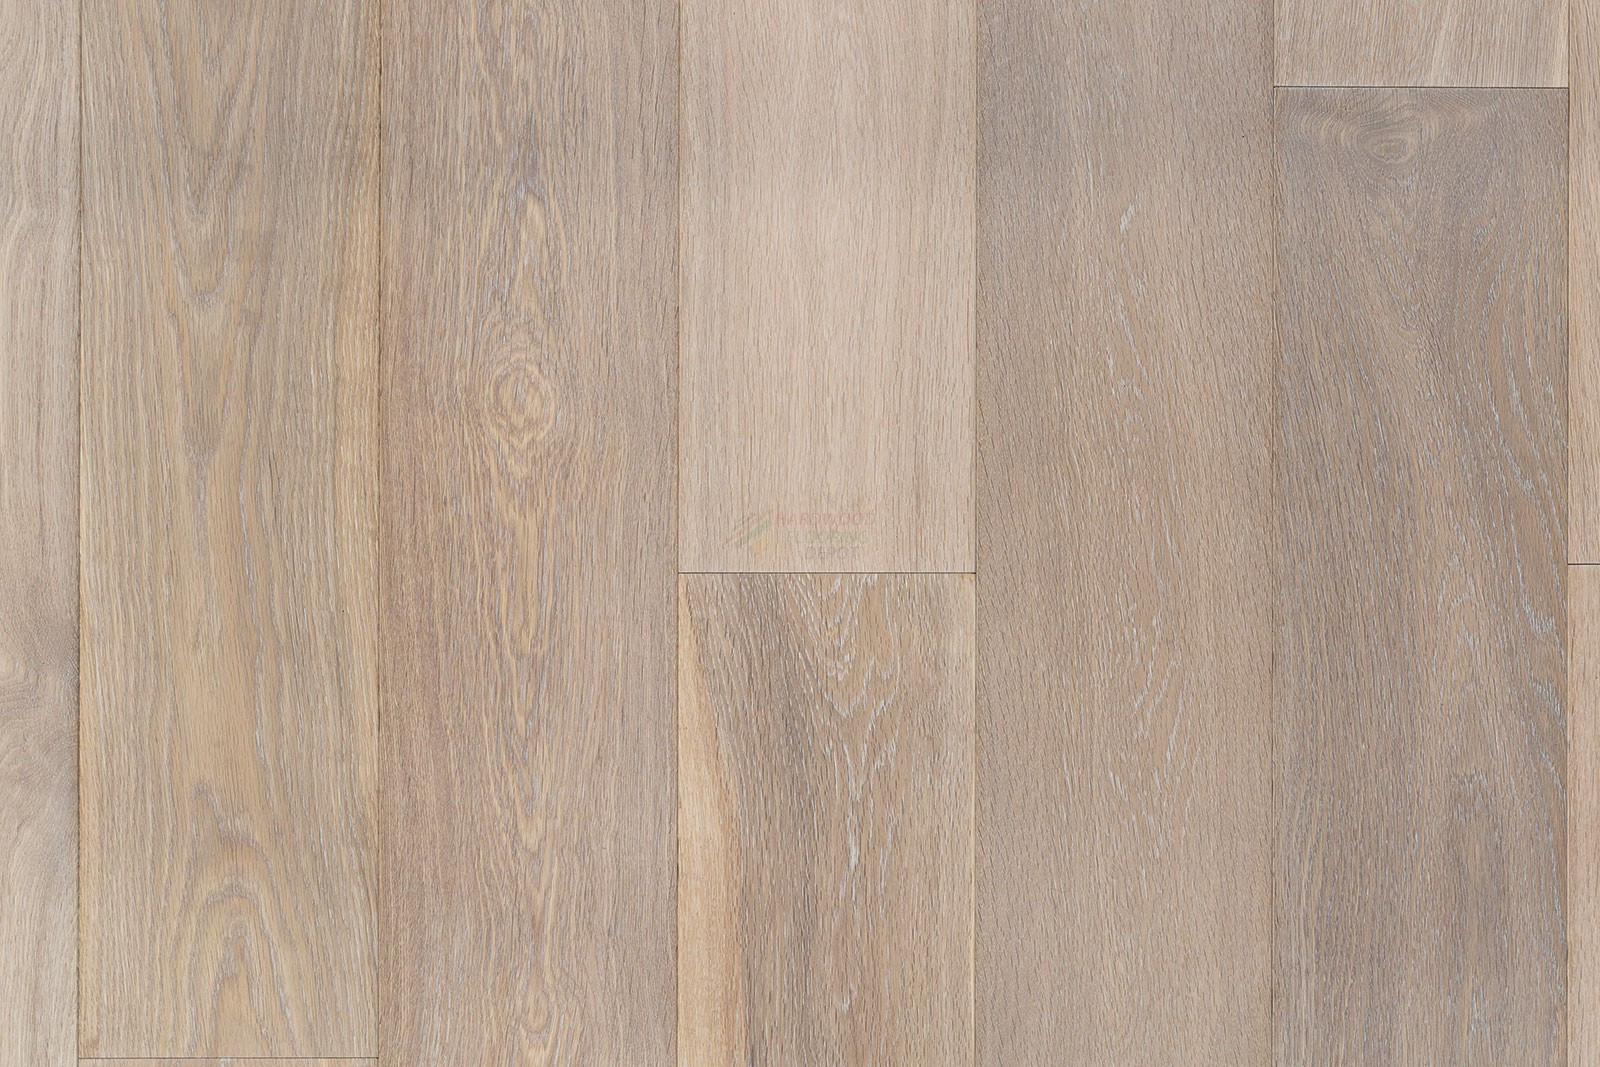 hardwood flooring depot research drive irvine ca of duchateau lugano vernal collection egrpyr5 1 european white oak for duchateau lugano vernal collection egrpyr5 1 european white oak 7 5